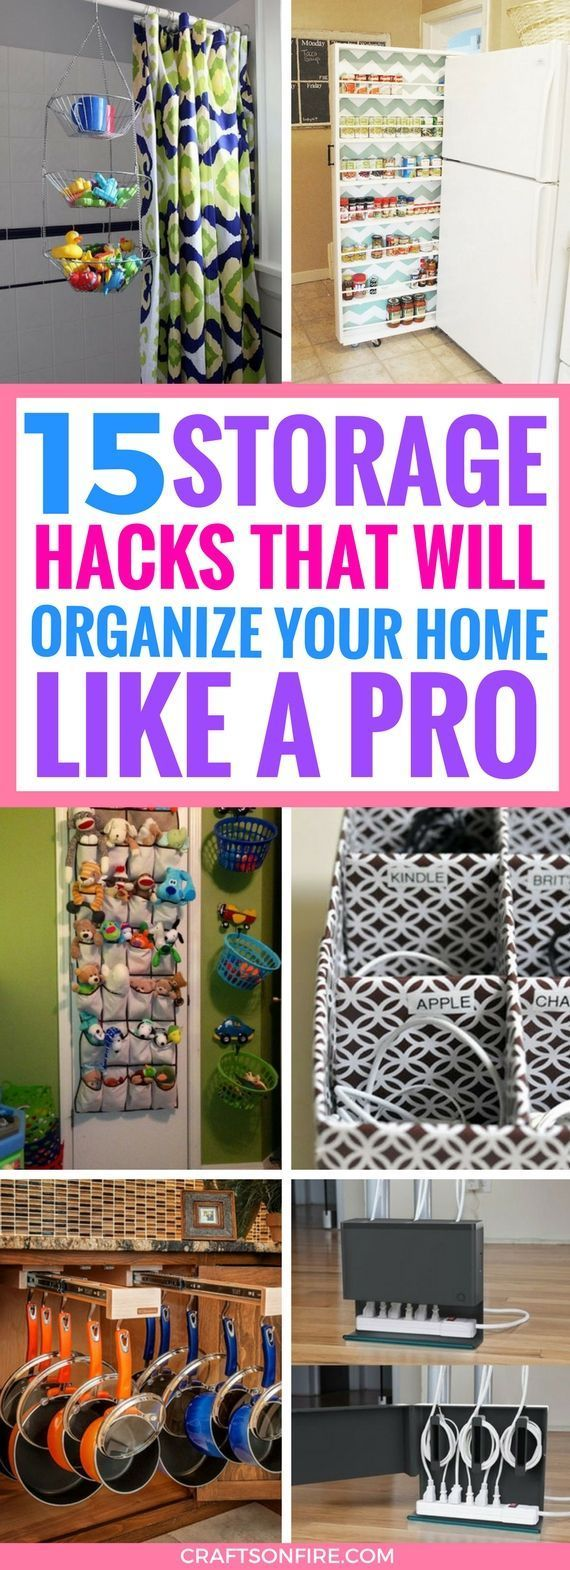 These Storage Organization Ideas are the BEST. Seriously incredible ways that will help you sort and arrange all the stuff in your home. I can't believe I didn't think of these before. Definitely saving for later. #organization #storage #storagesolutions